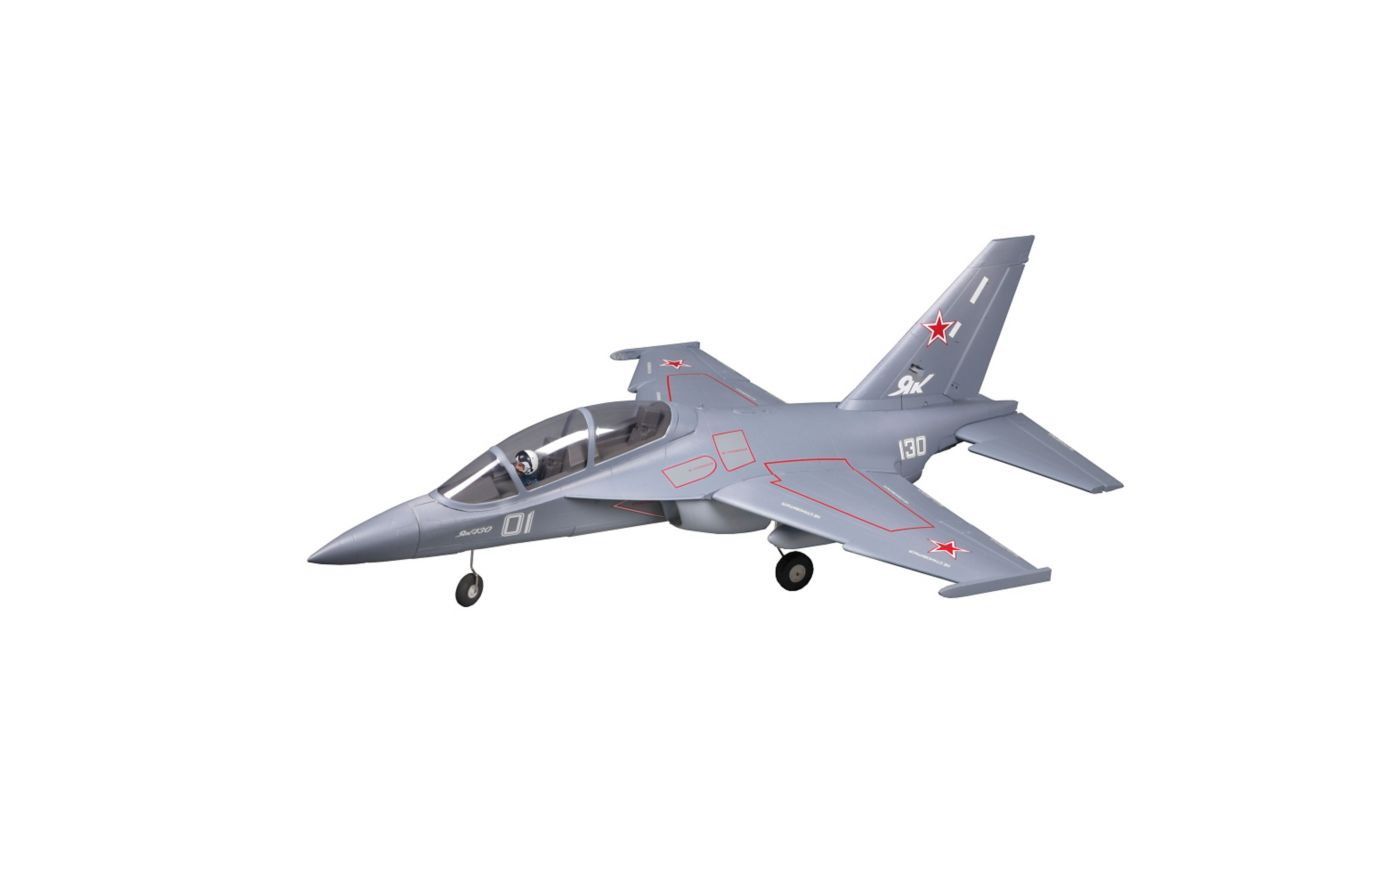 Image for Yak 130 Jet PNP, 70mm: Gray from Force RC